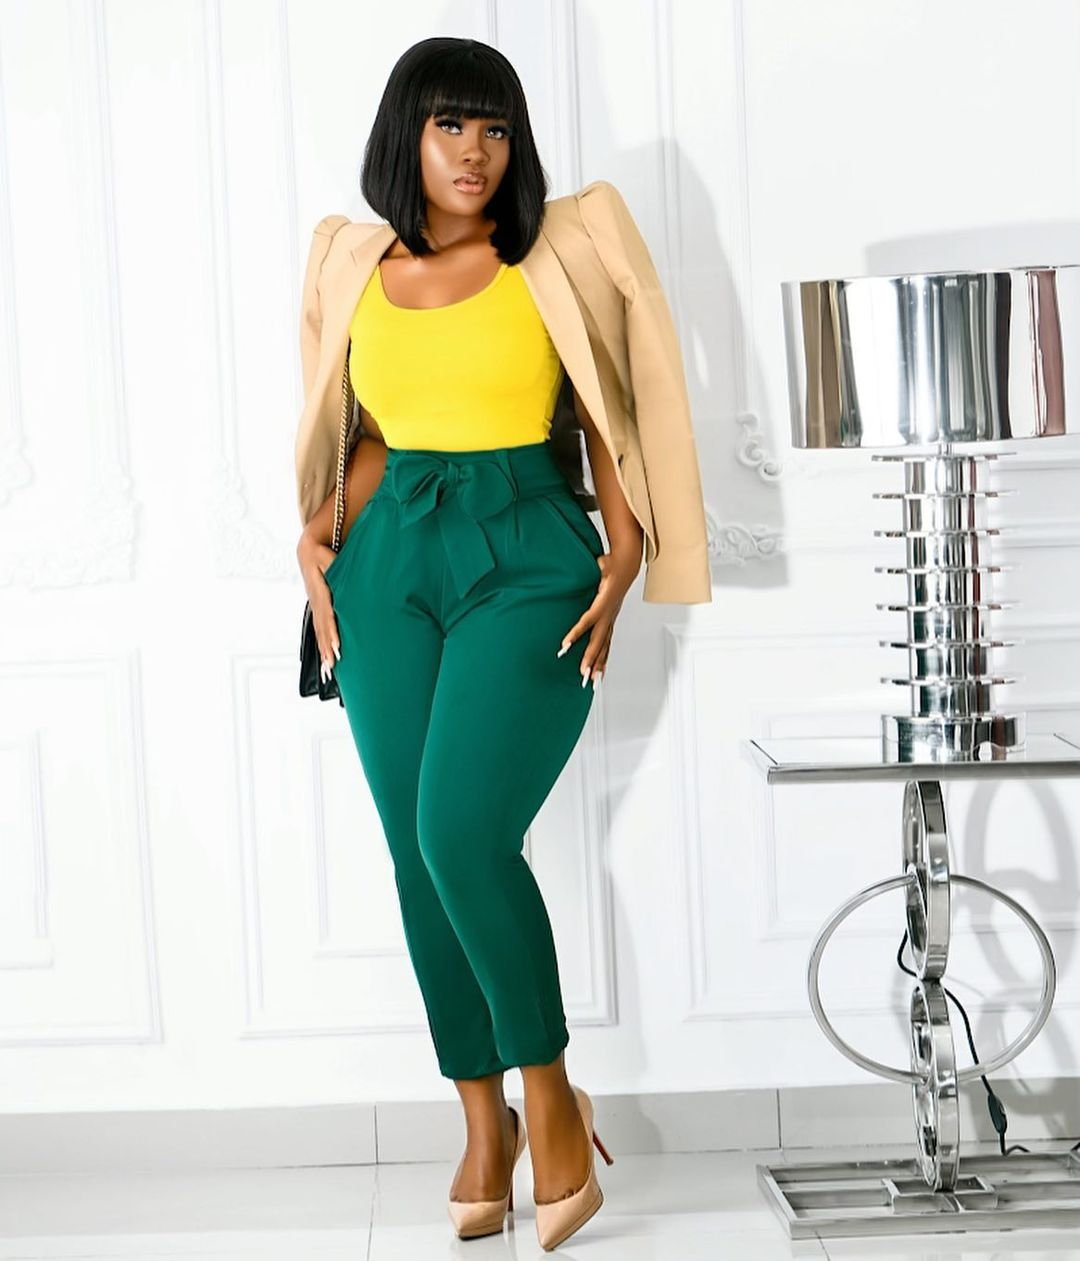 Cynthia Nwadiora Keeps It Perfect on Her Three Pieces